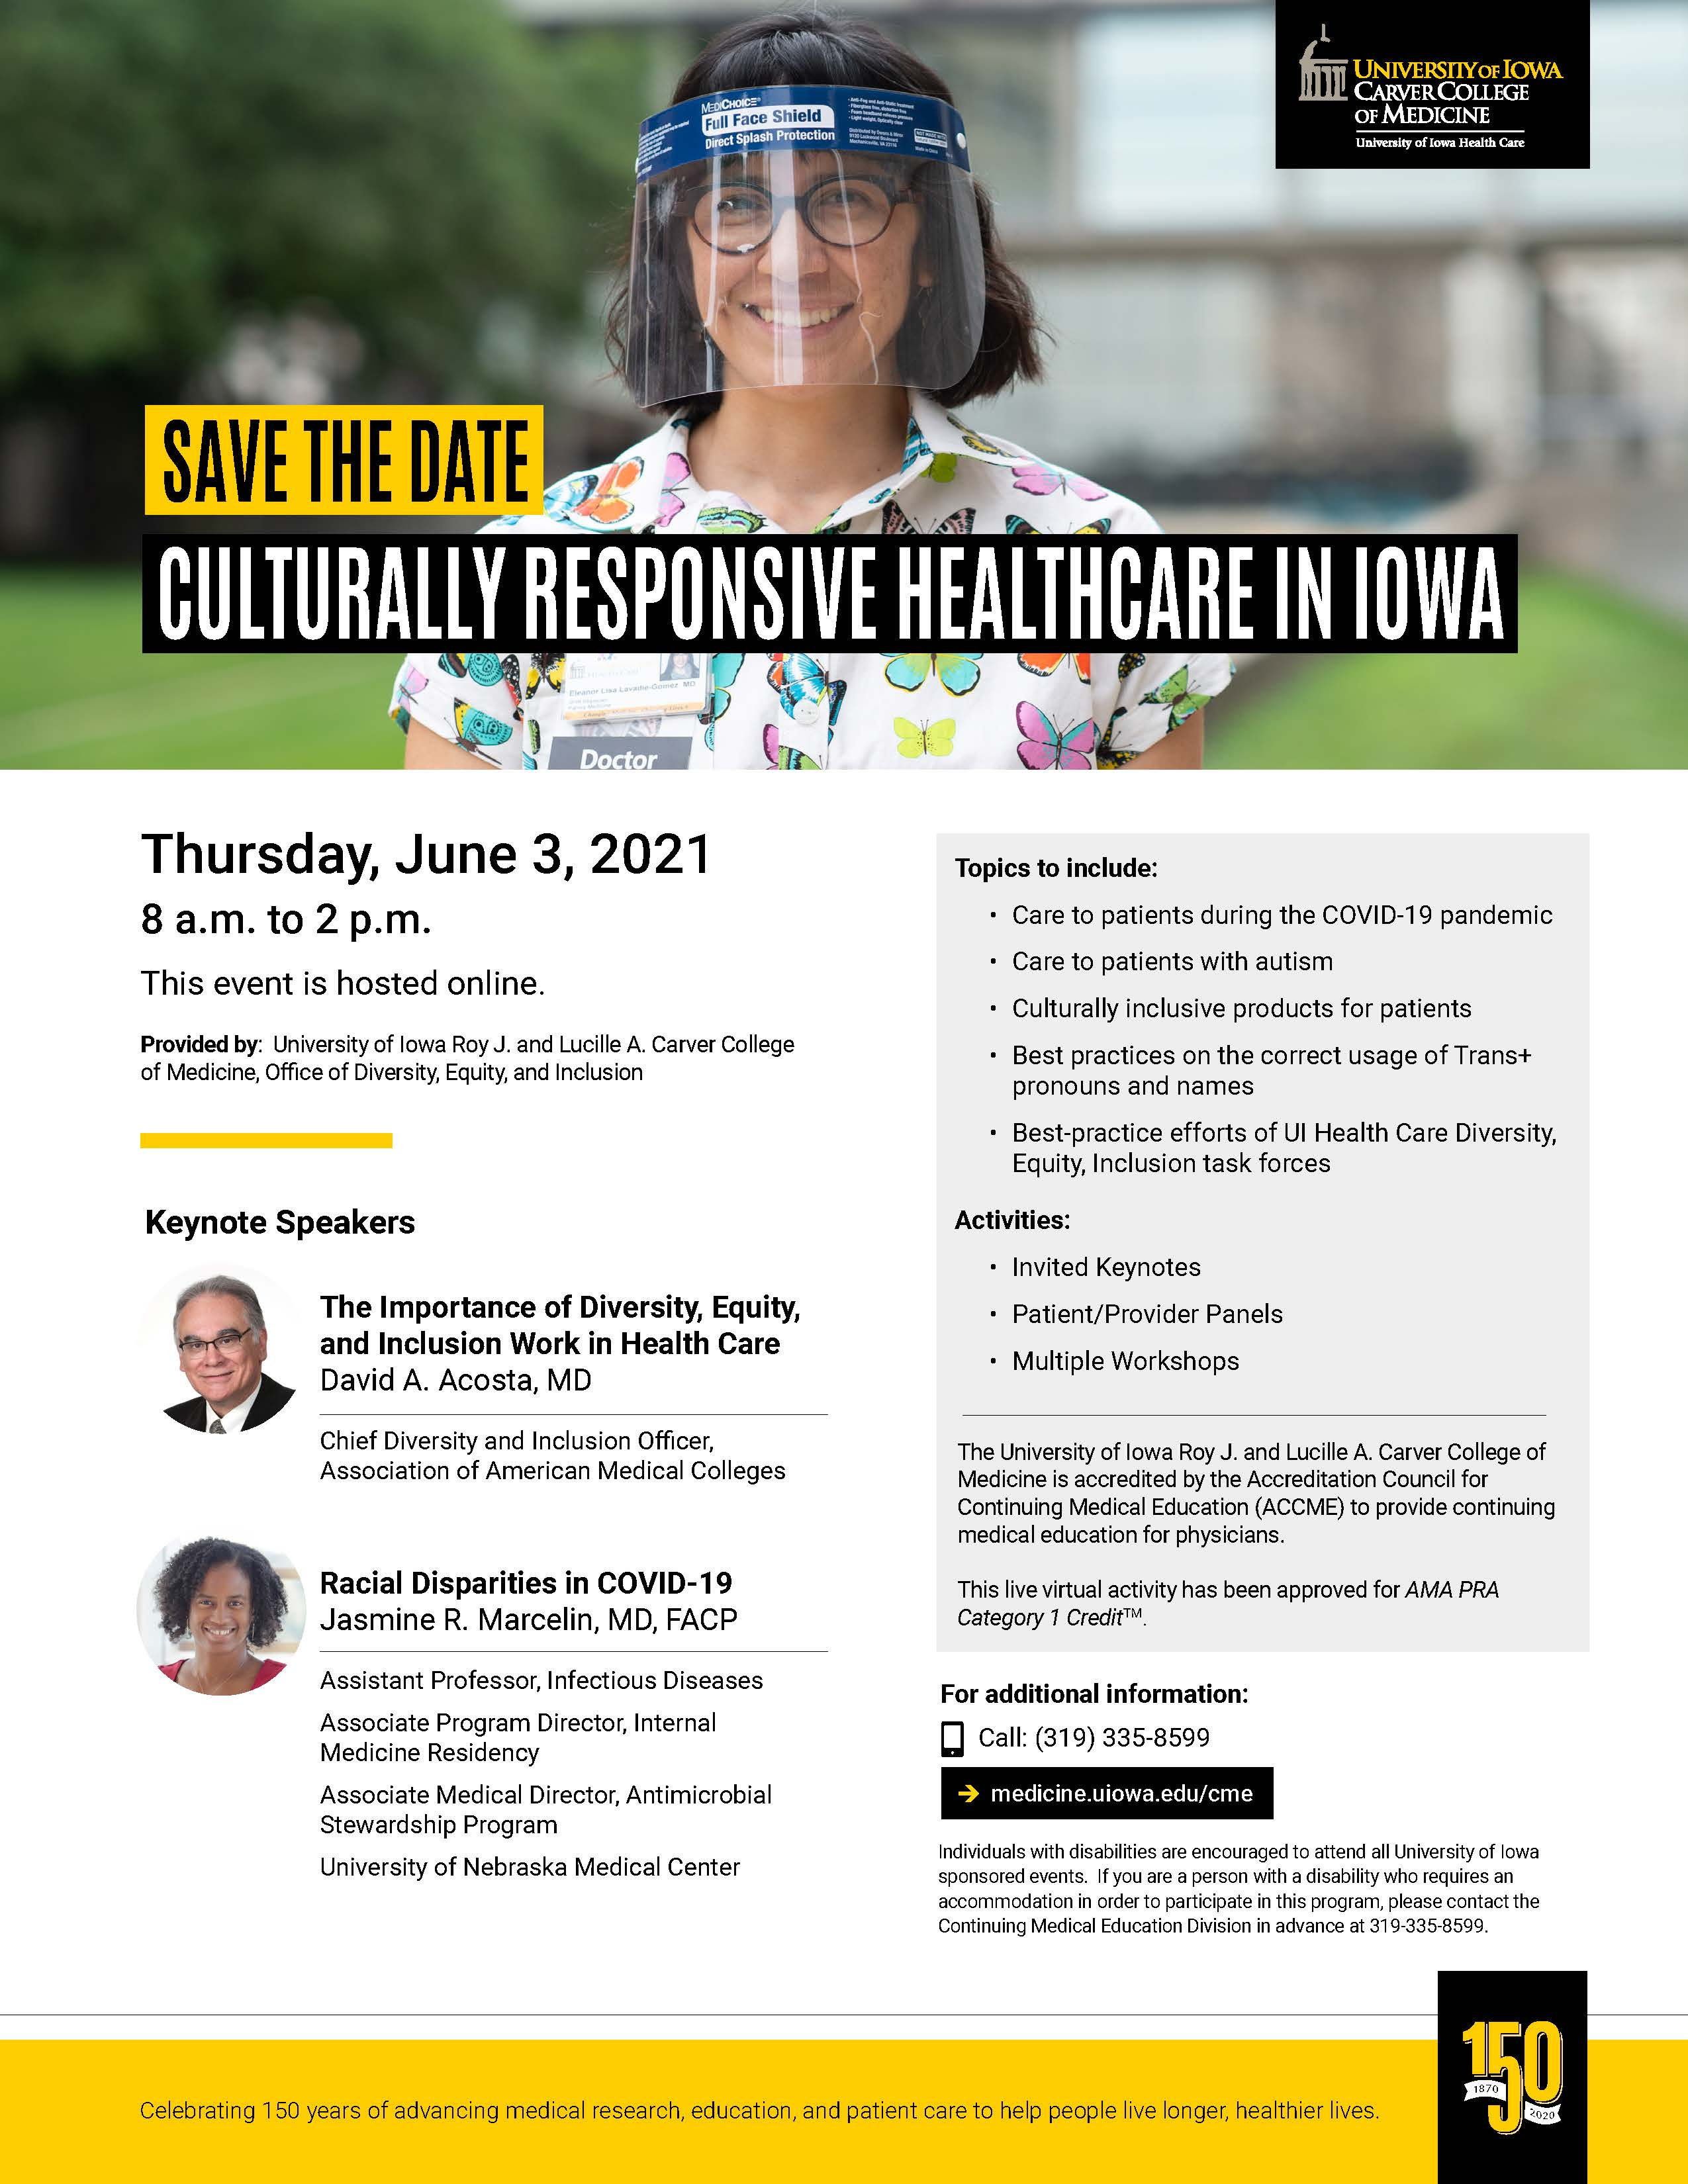 Culturally Responsive Health Care in Iowa promotional image